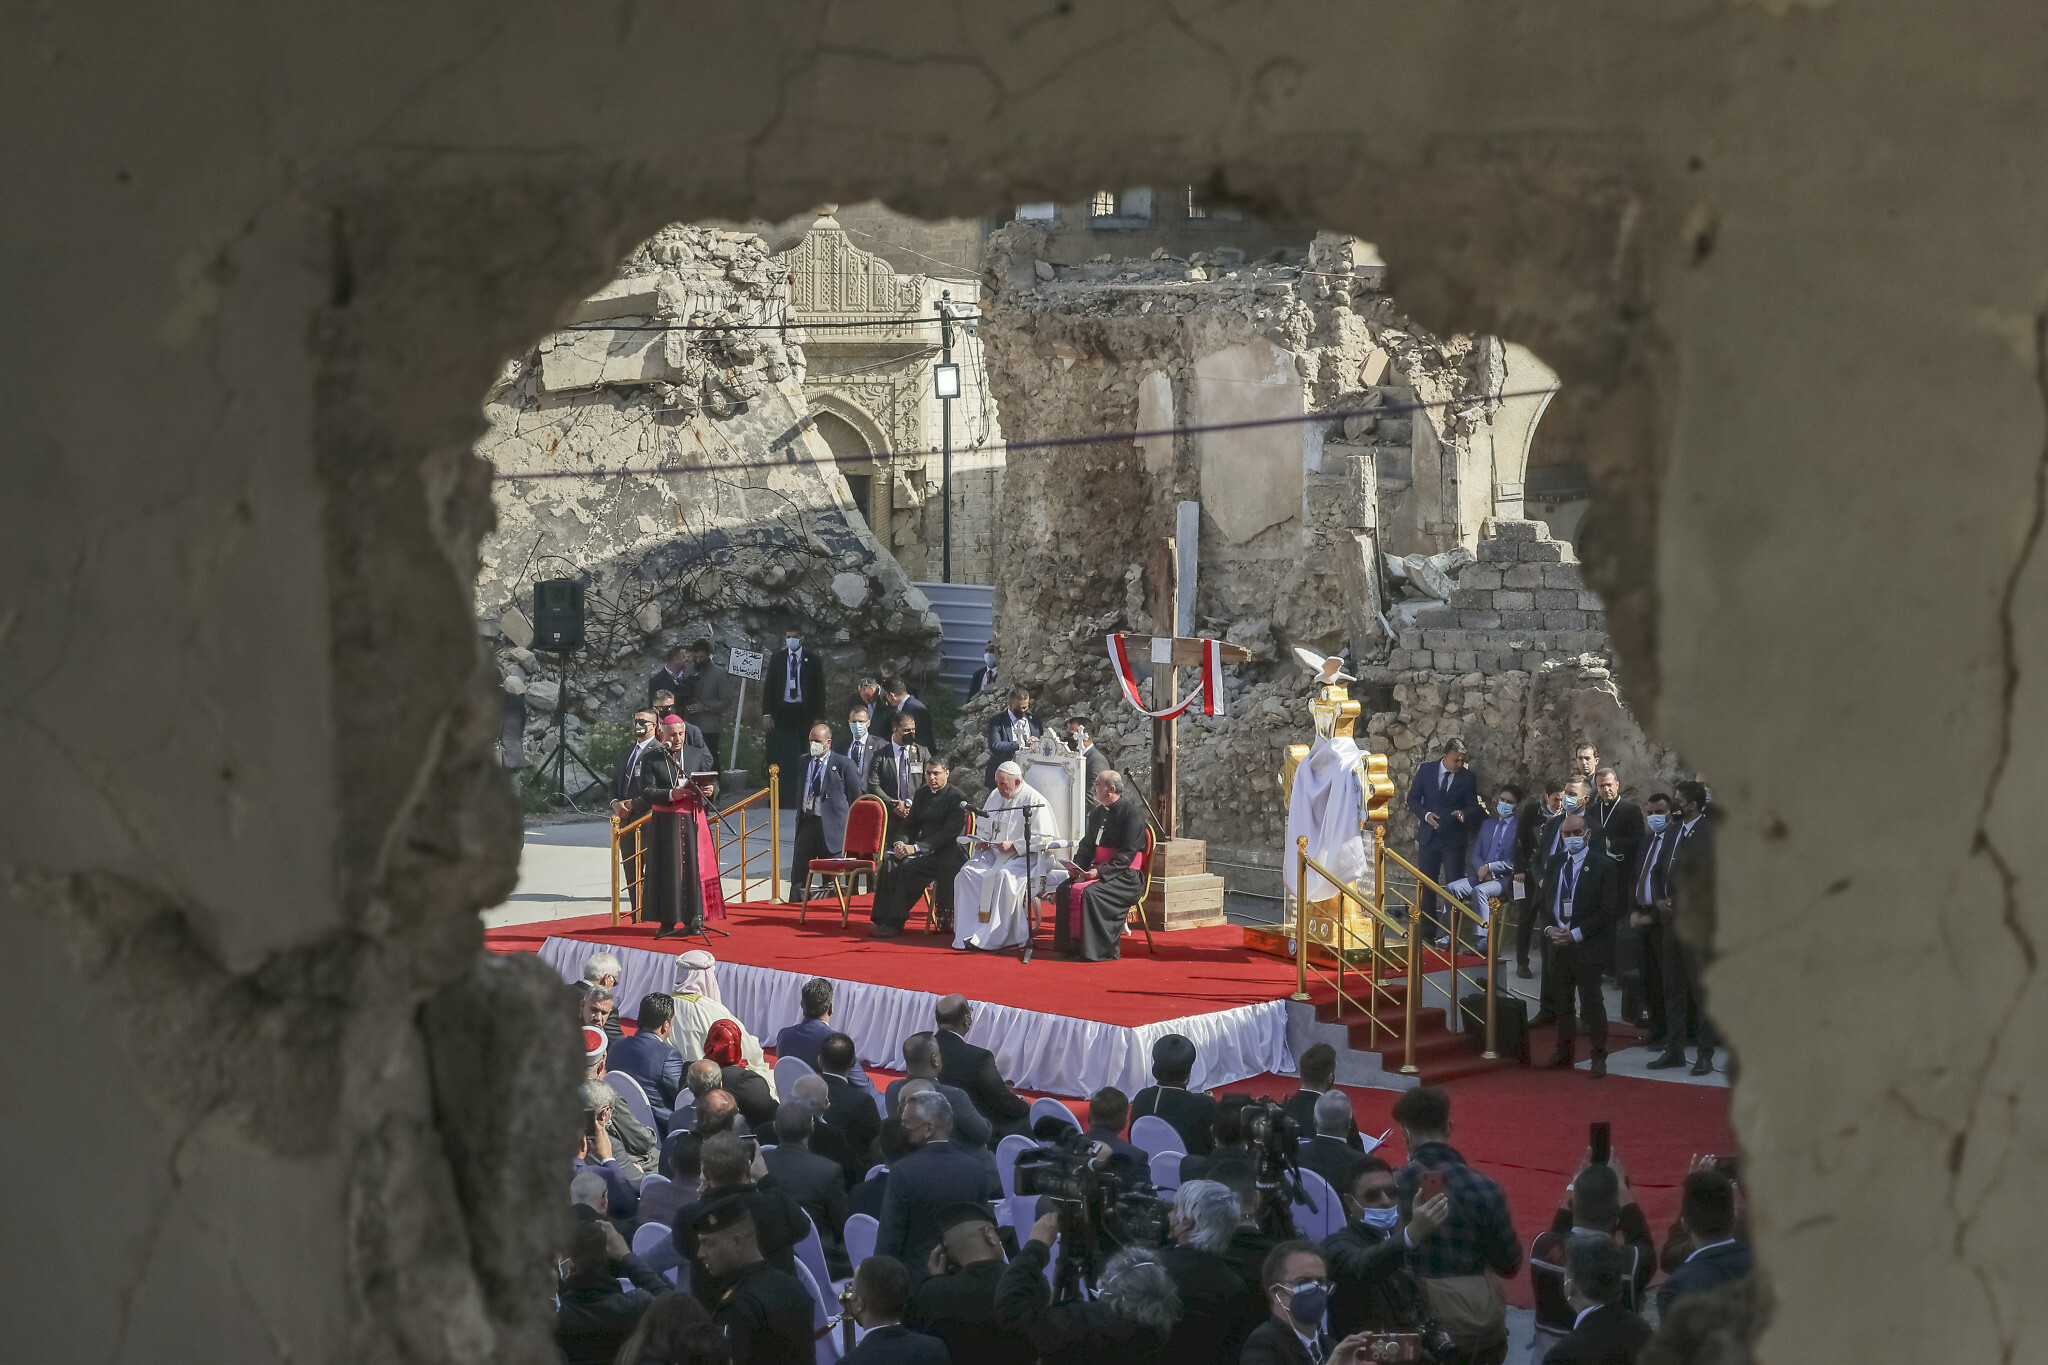 Amid Mosul church ruins, Pope laments 'barbarous blow' of extremism in Iraq  | The Times of Israel